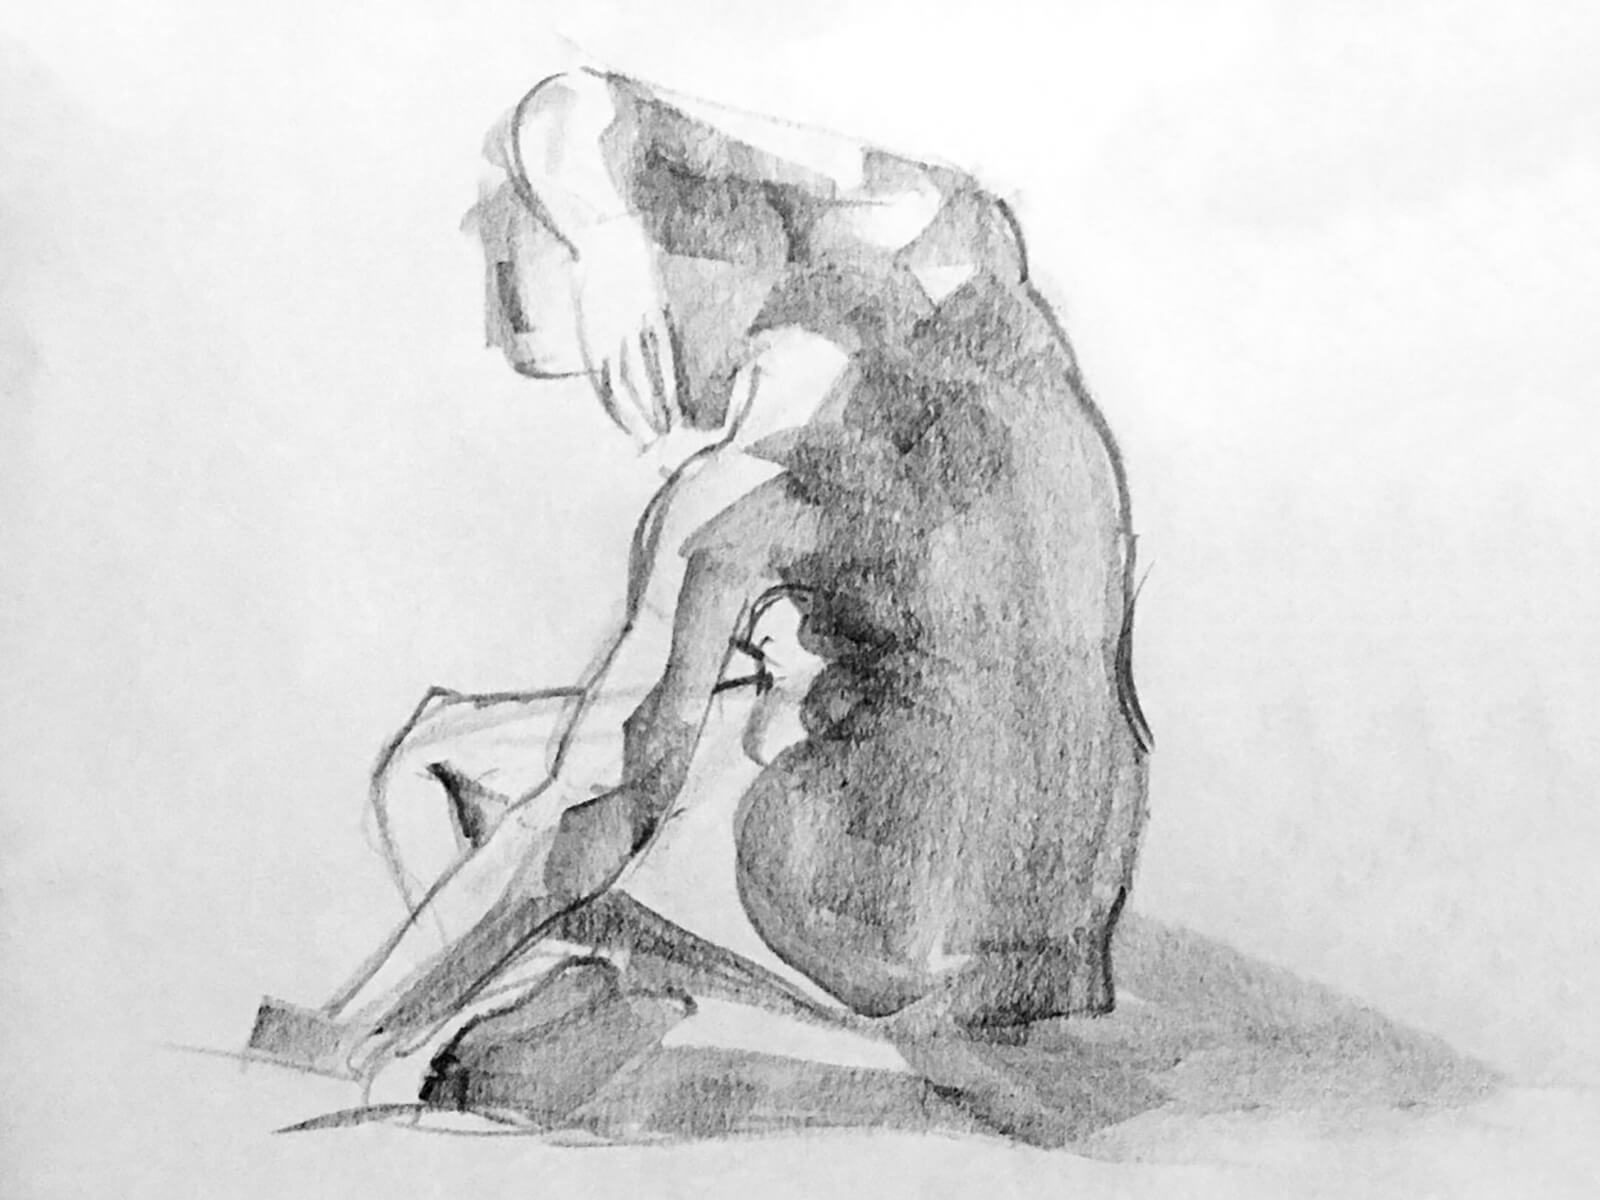 A sketch of a nude woman sitting down, her arm over her head